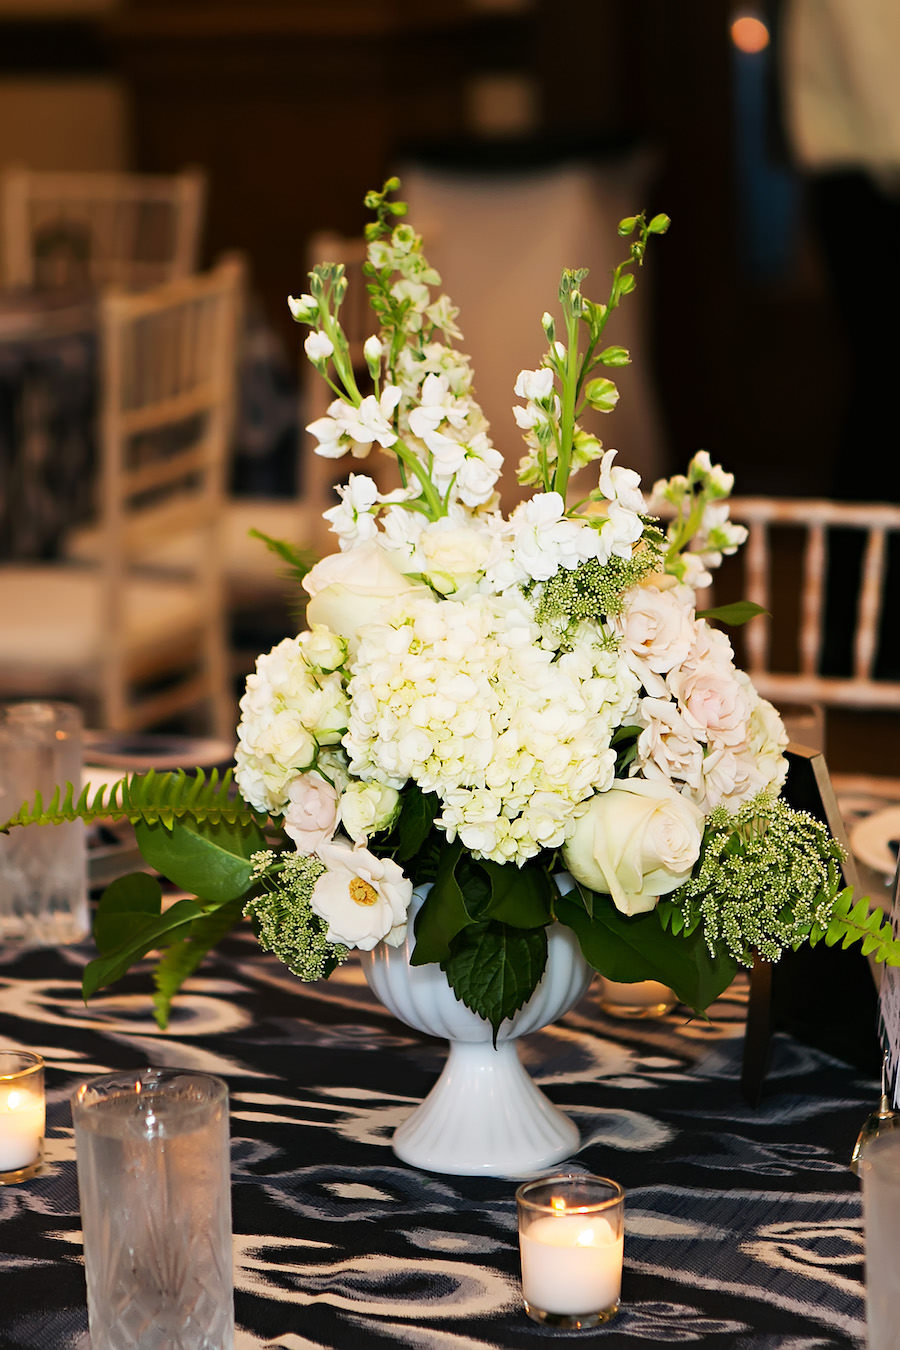 White Wedding Floral Centerpiece with Hydrangeas, Pink Roses and Greenery and Navy Blue Linens   Over the Top Linen Rentals